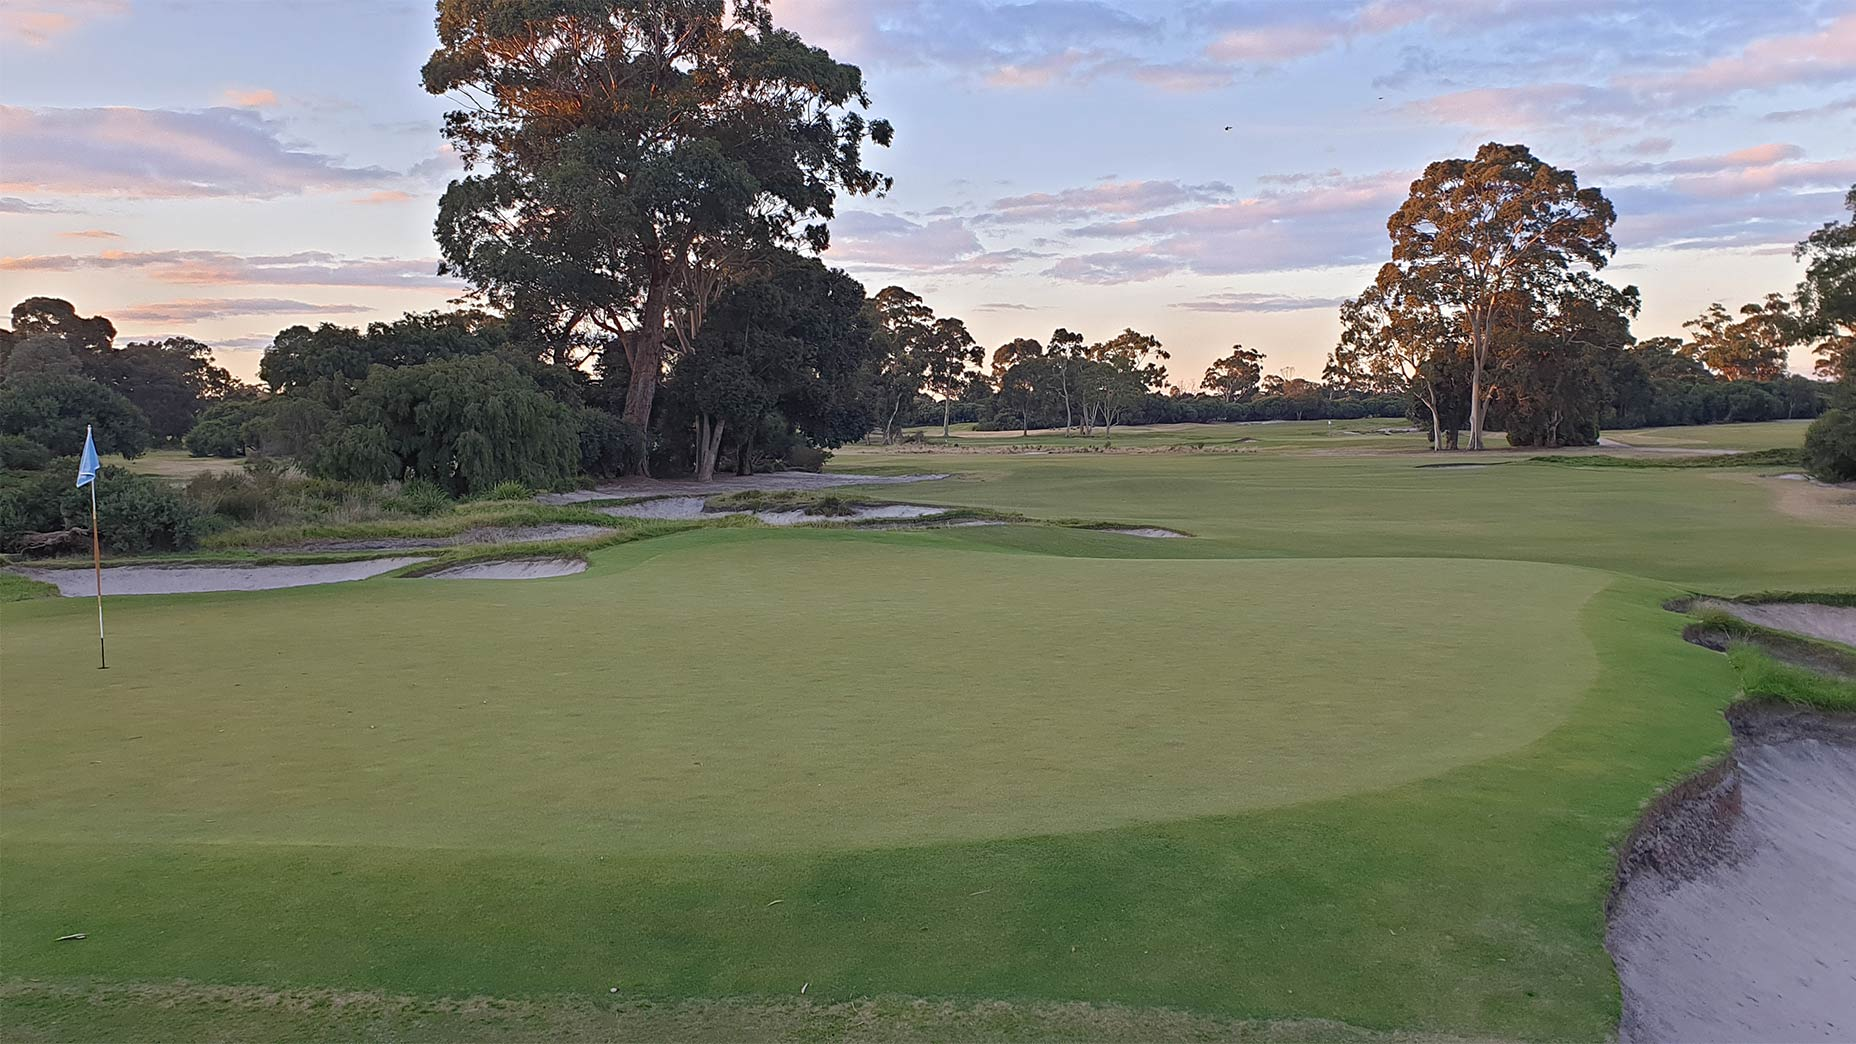 A view of the green back toward the tee of the par-4 3rd hole at Kingston Heath.